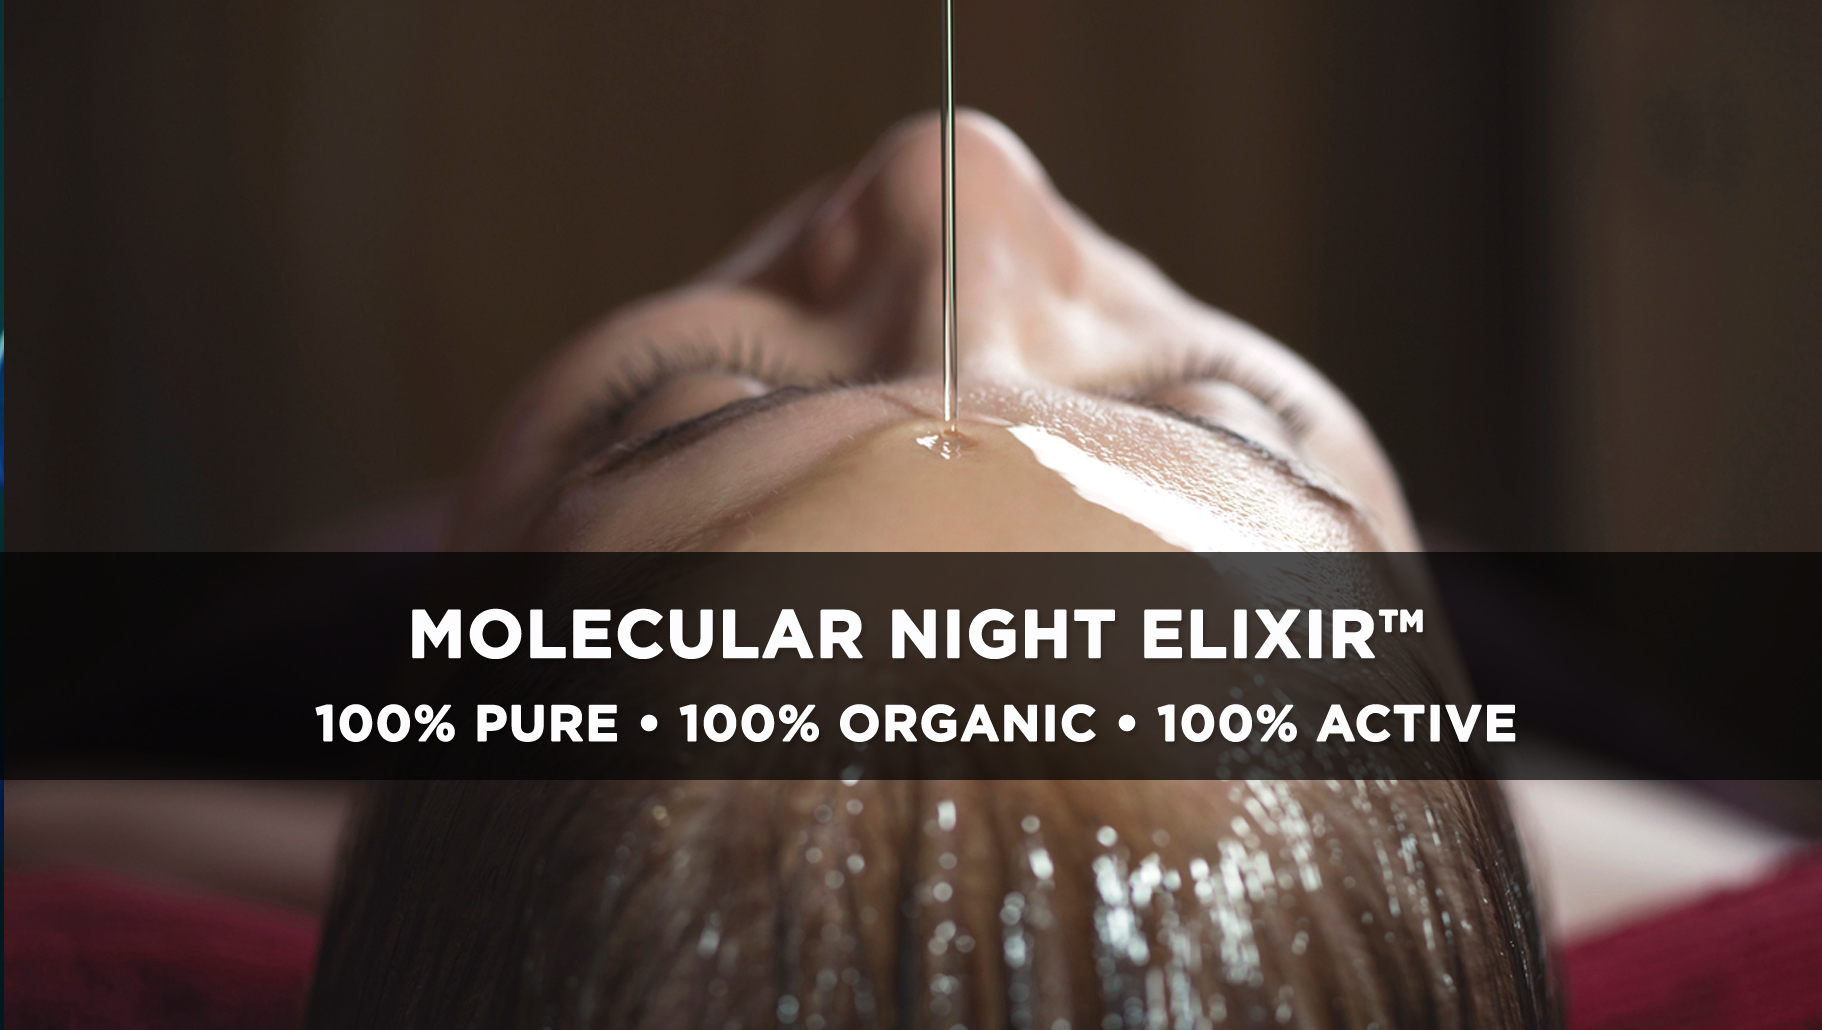 MOLECULAR NIGHT ELIXIR™